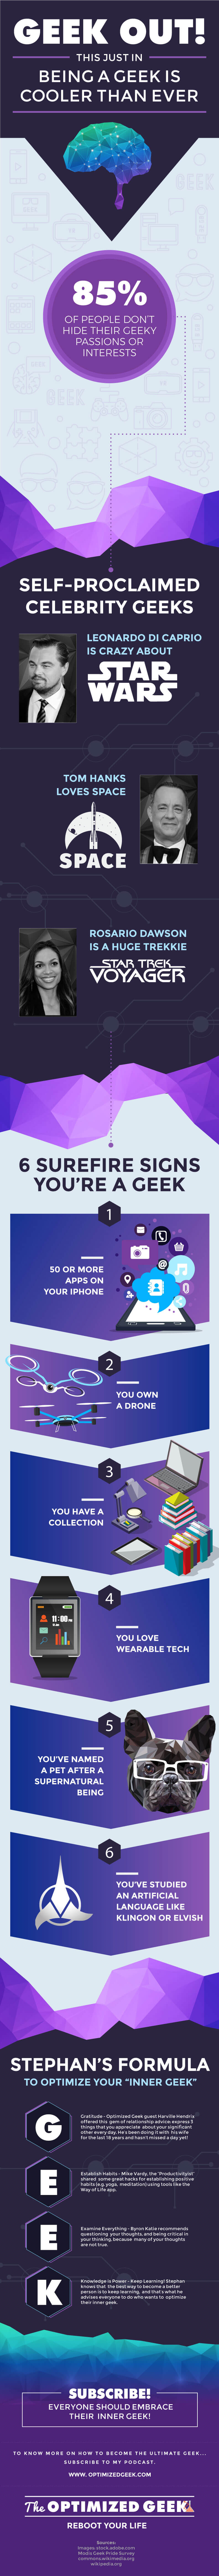 The Optimized Geek - Are you a Geek?